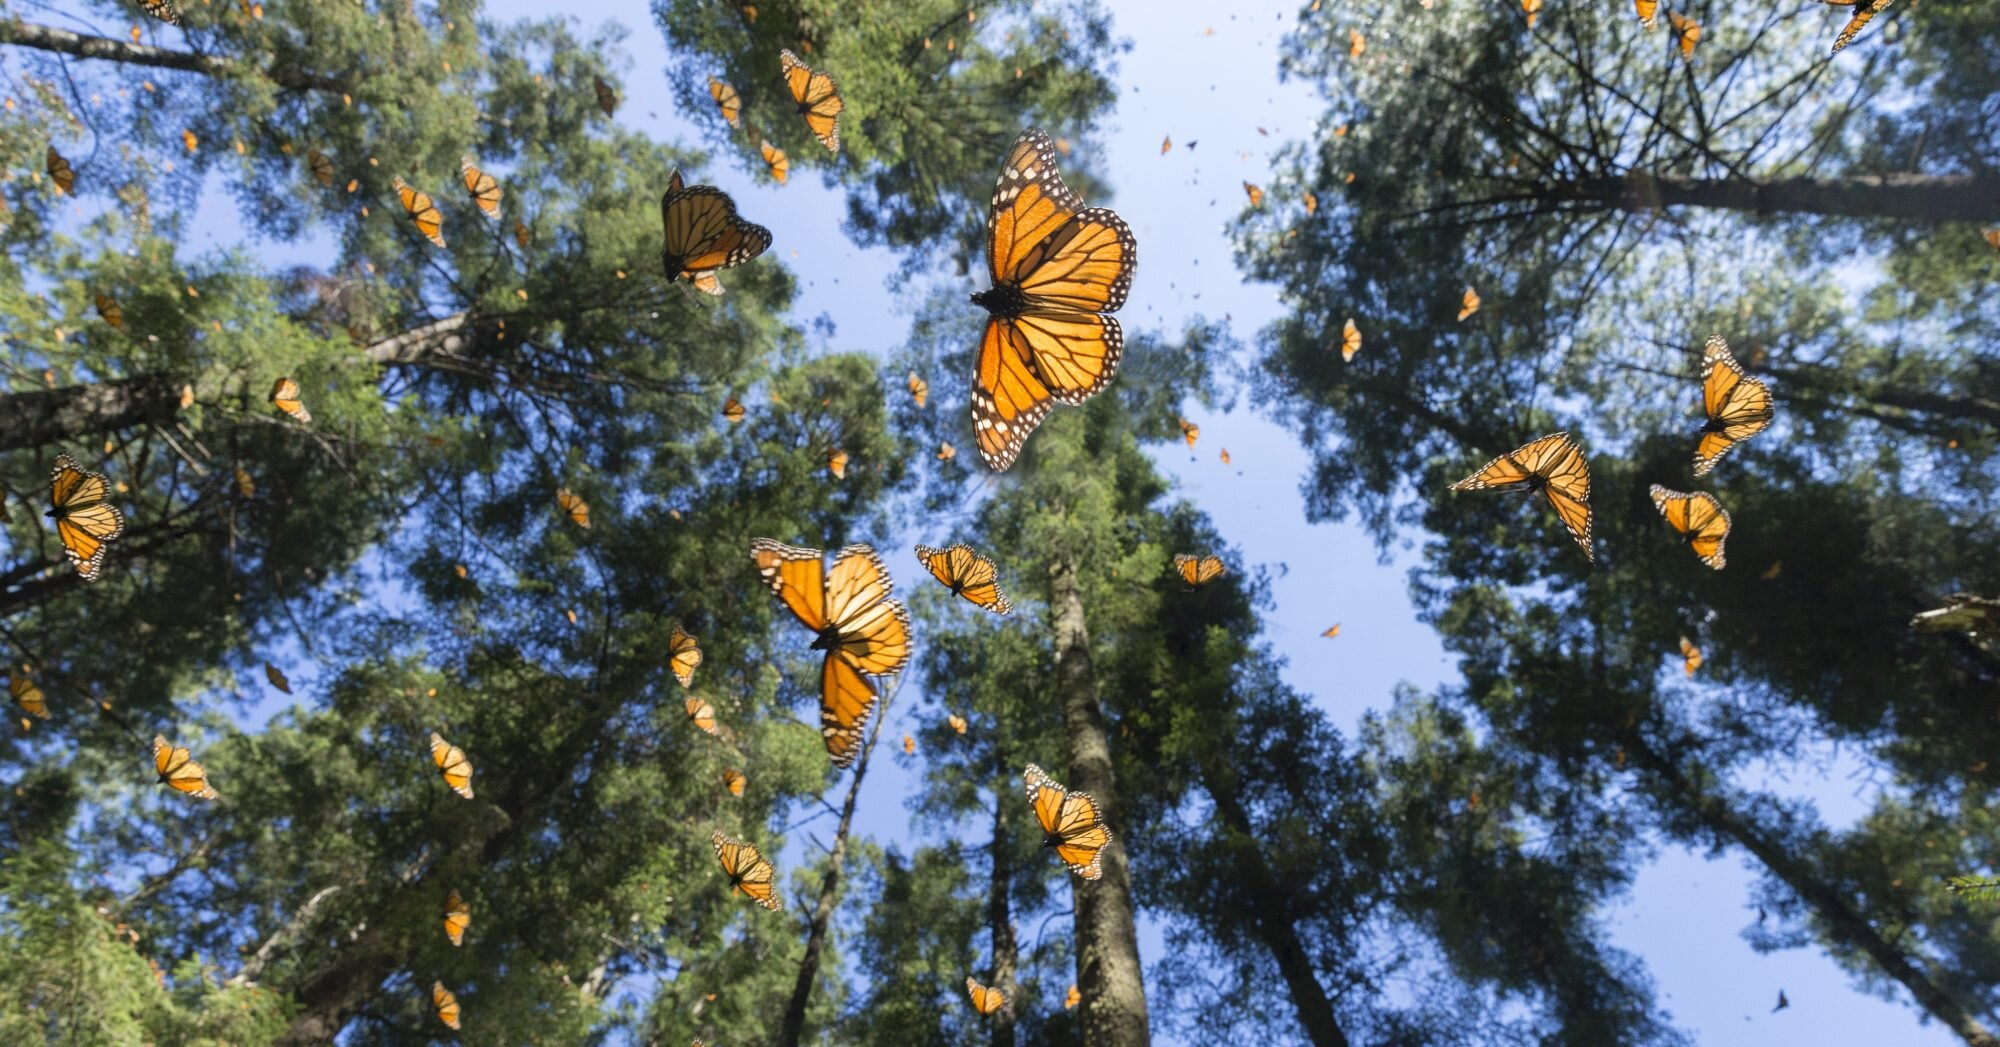 Seven of the Best Places to See Butterflies in the United States